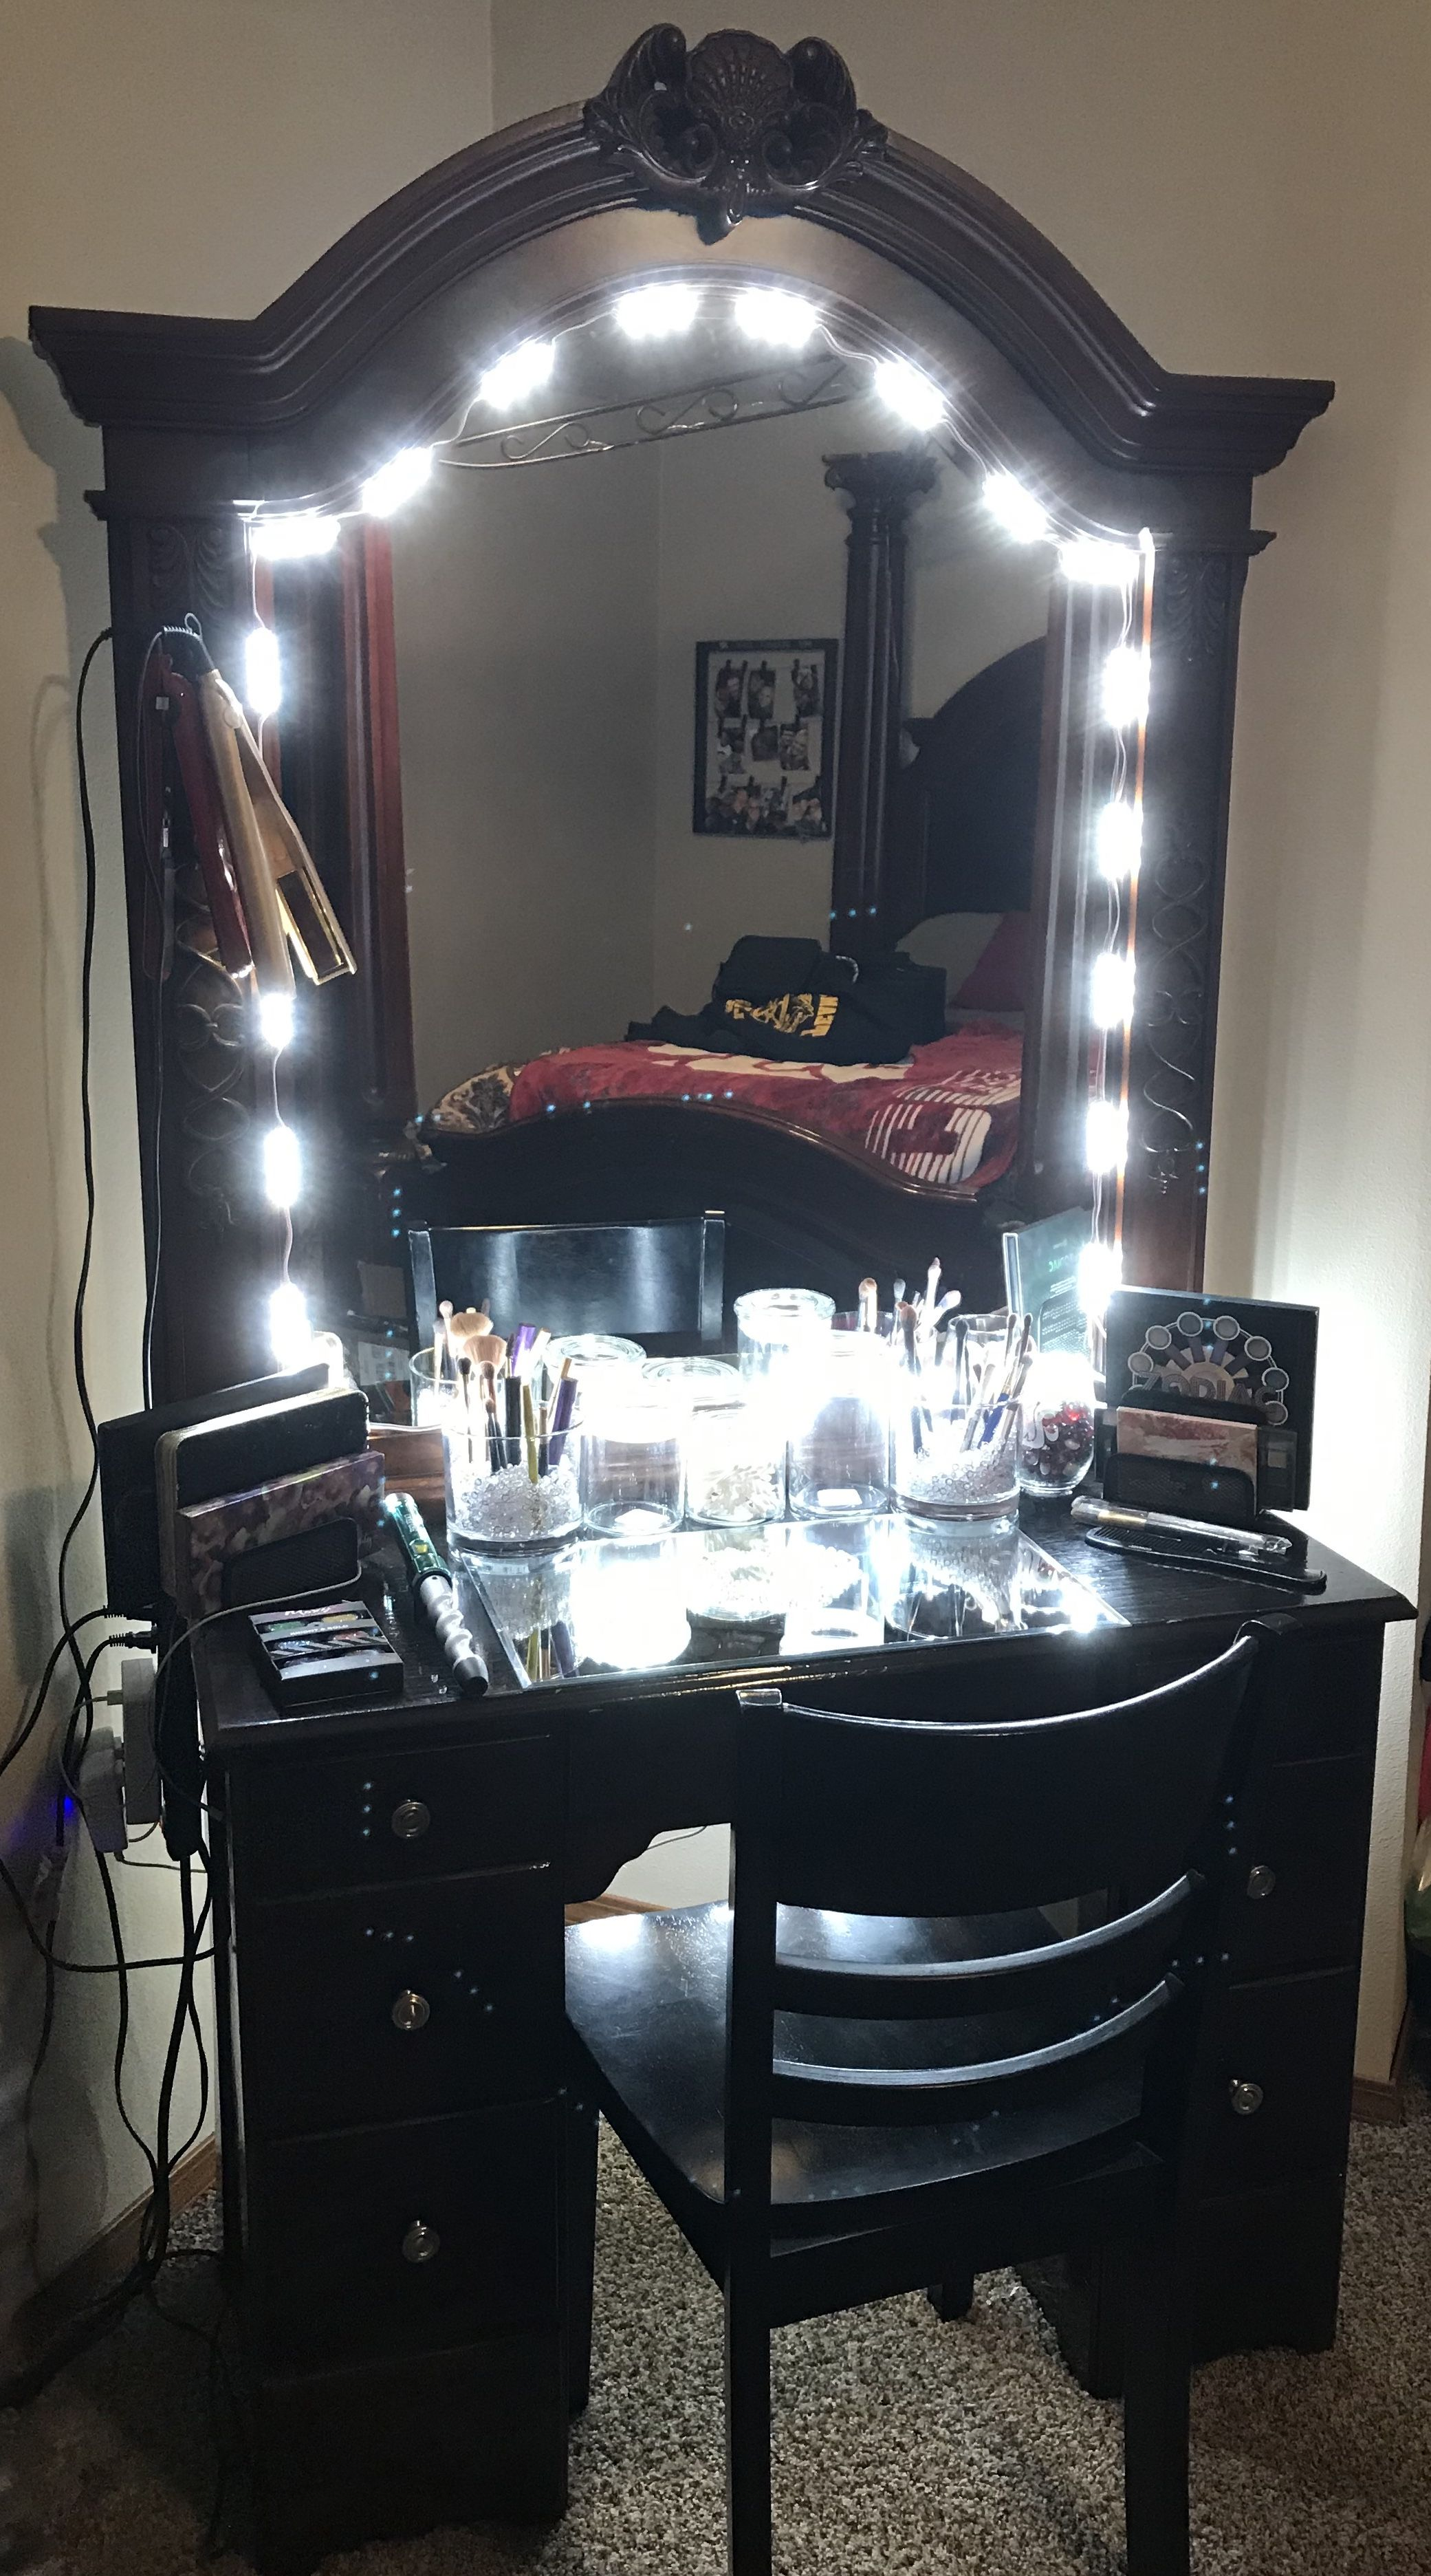 My Boyfriend Refinished An Old Desk He Bought Off Of Craigslist And Make This Amazing Vanity For Me For My Birthday He Did An Absolutely In 2020 Vanity Old Desks Home